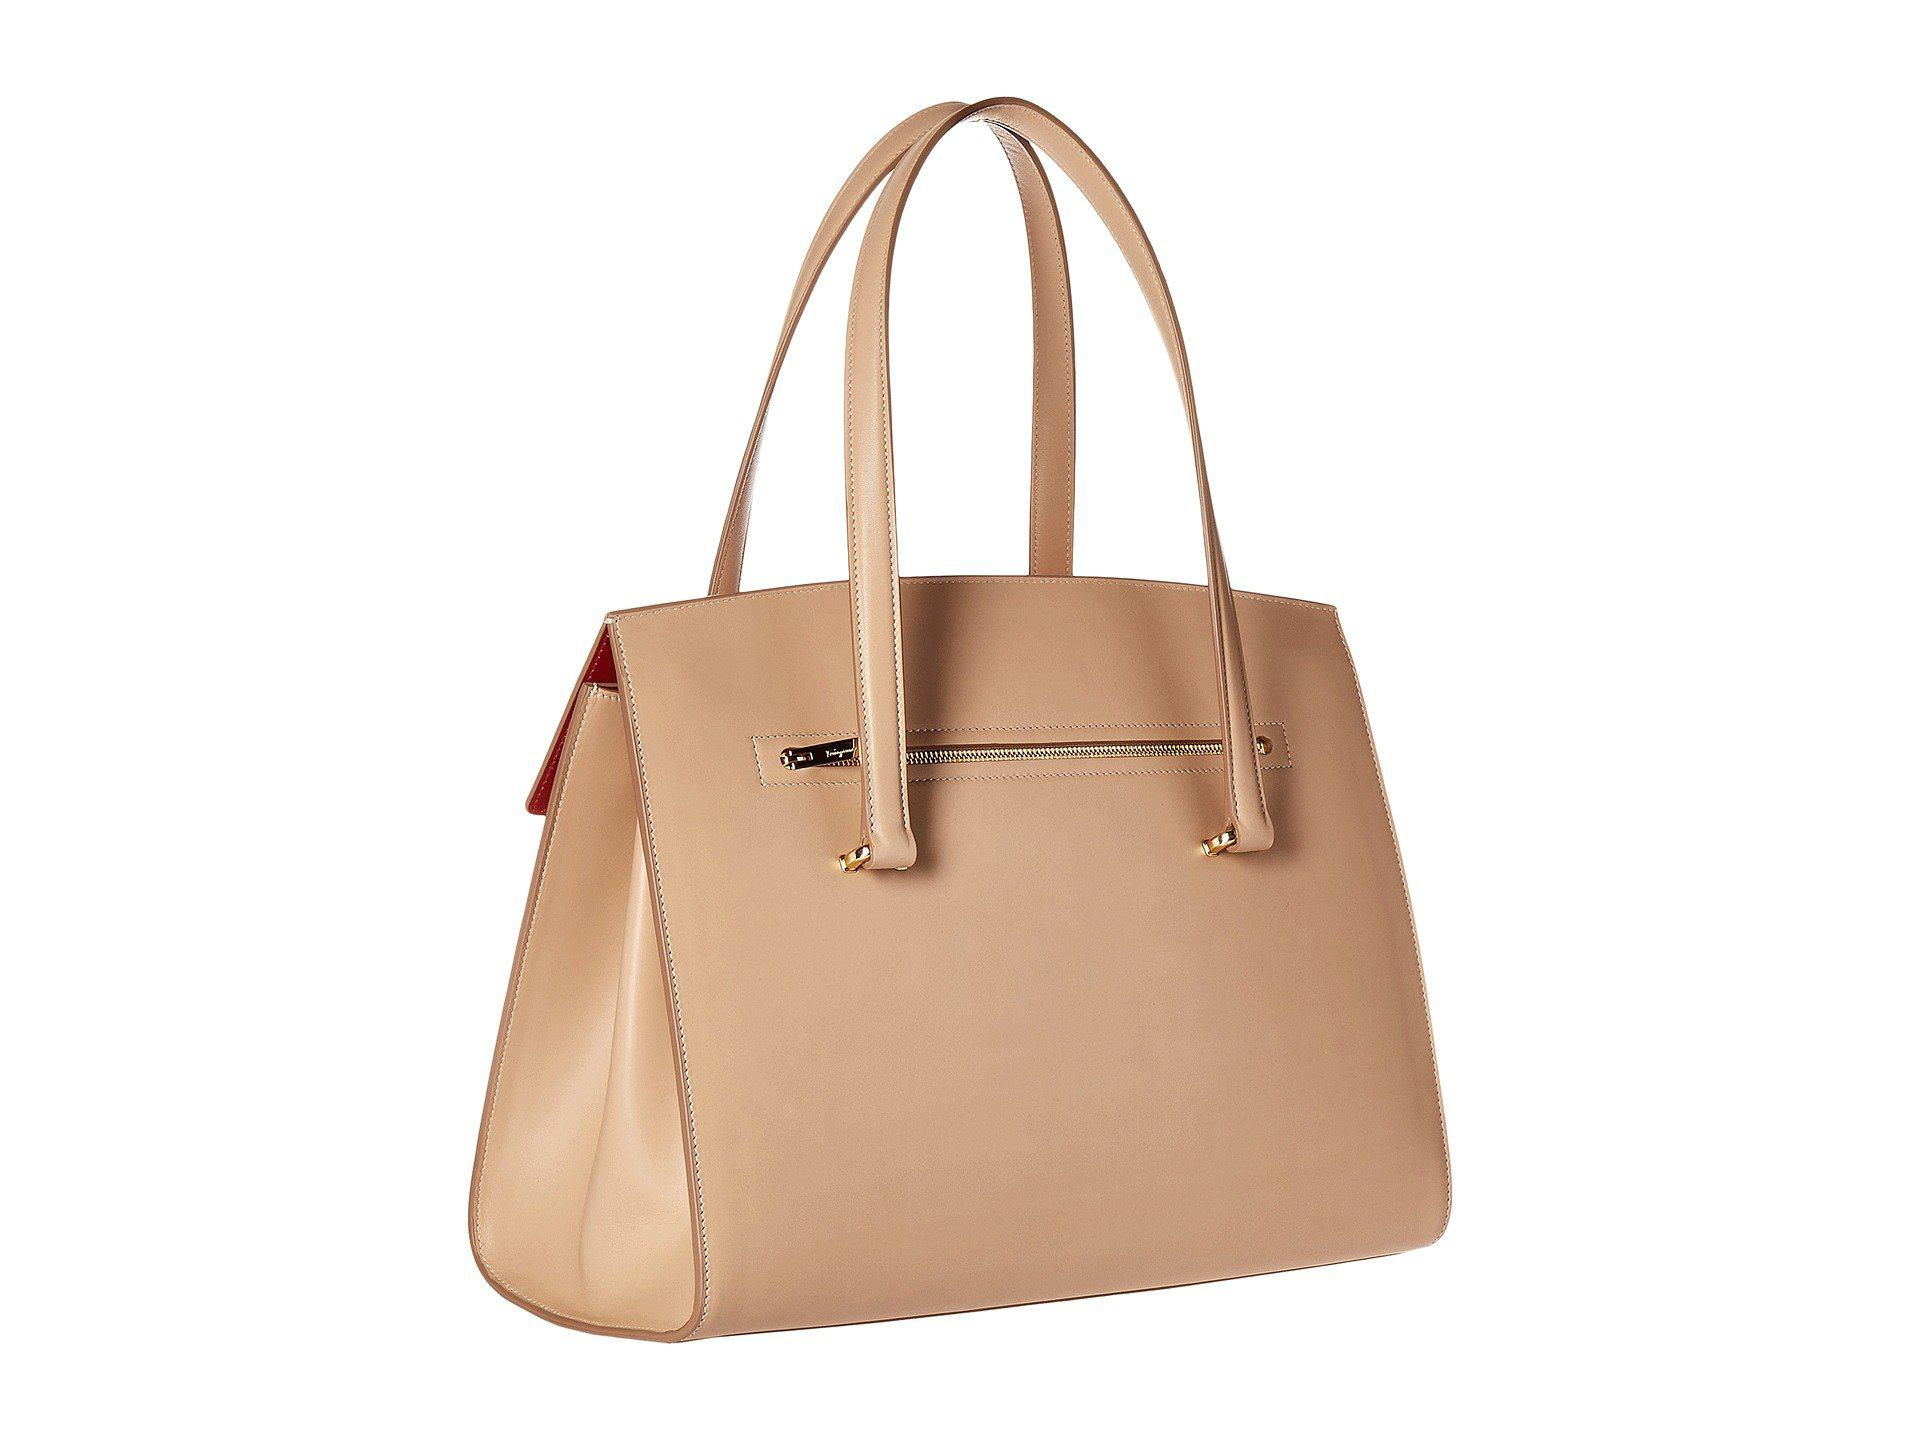 954dda05a42 Lyst - Ferragamo 21f818 Mara in Natural